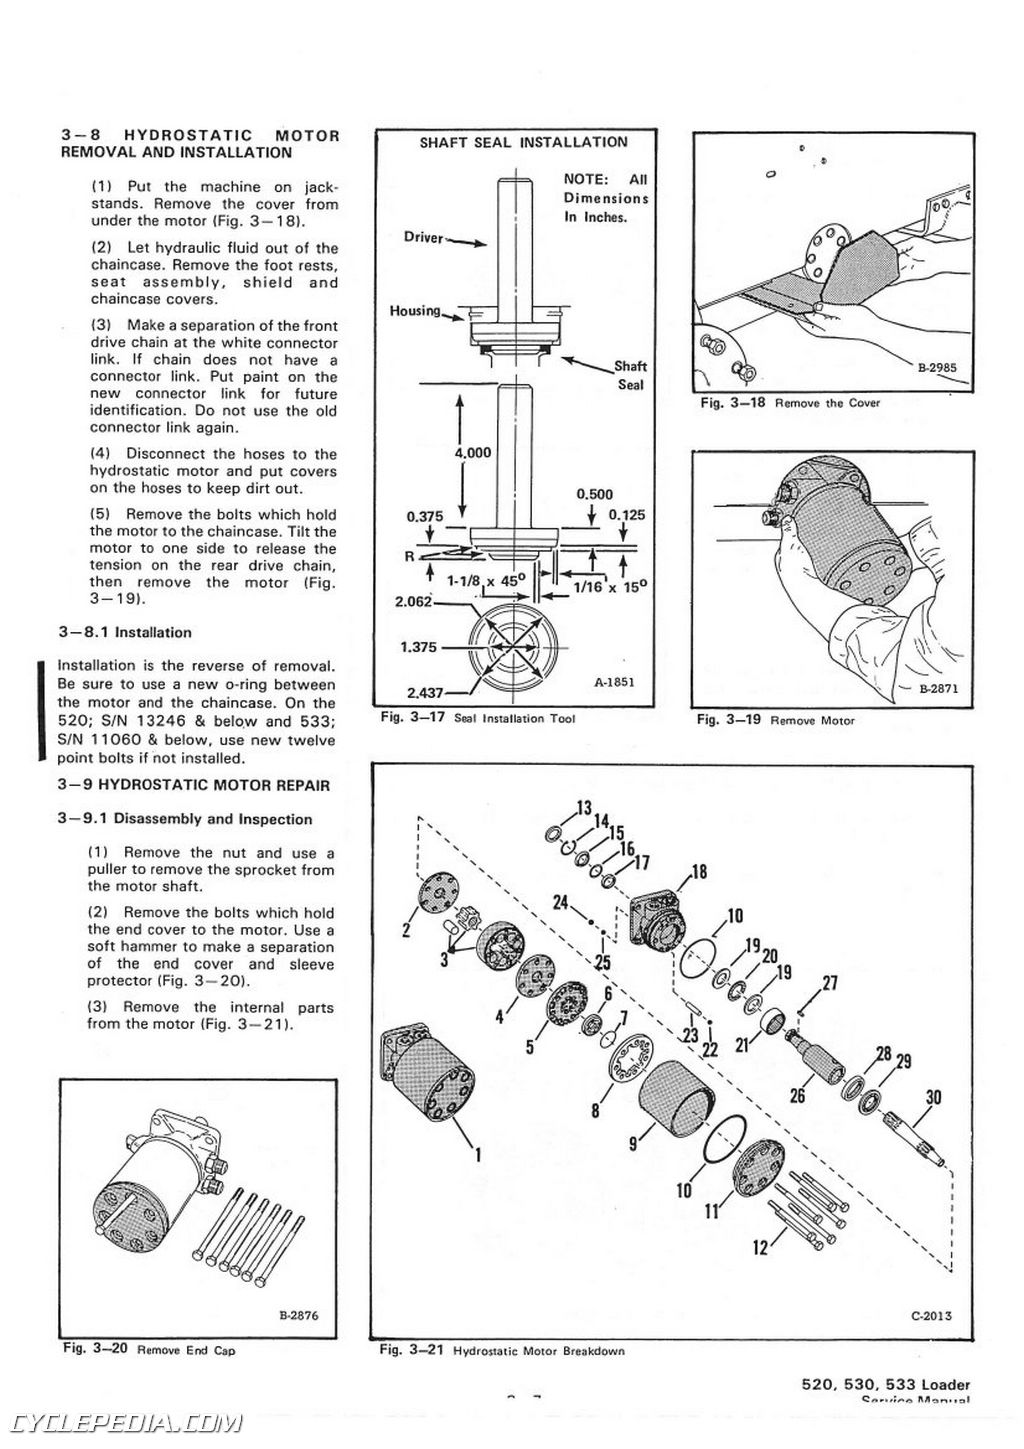 hight resolution of bobcat engine schematics wiring diagram online bobcat 763 hydraulic system diagram bobcat engine schematics schematic wiring